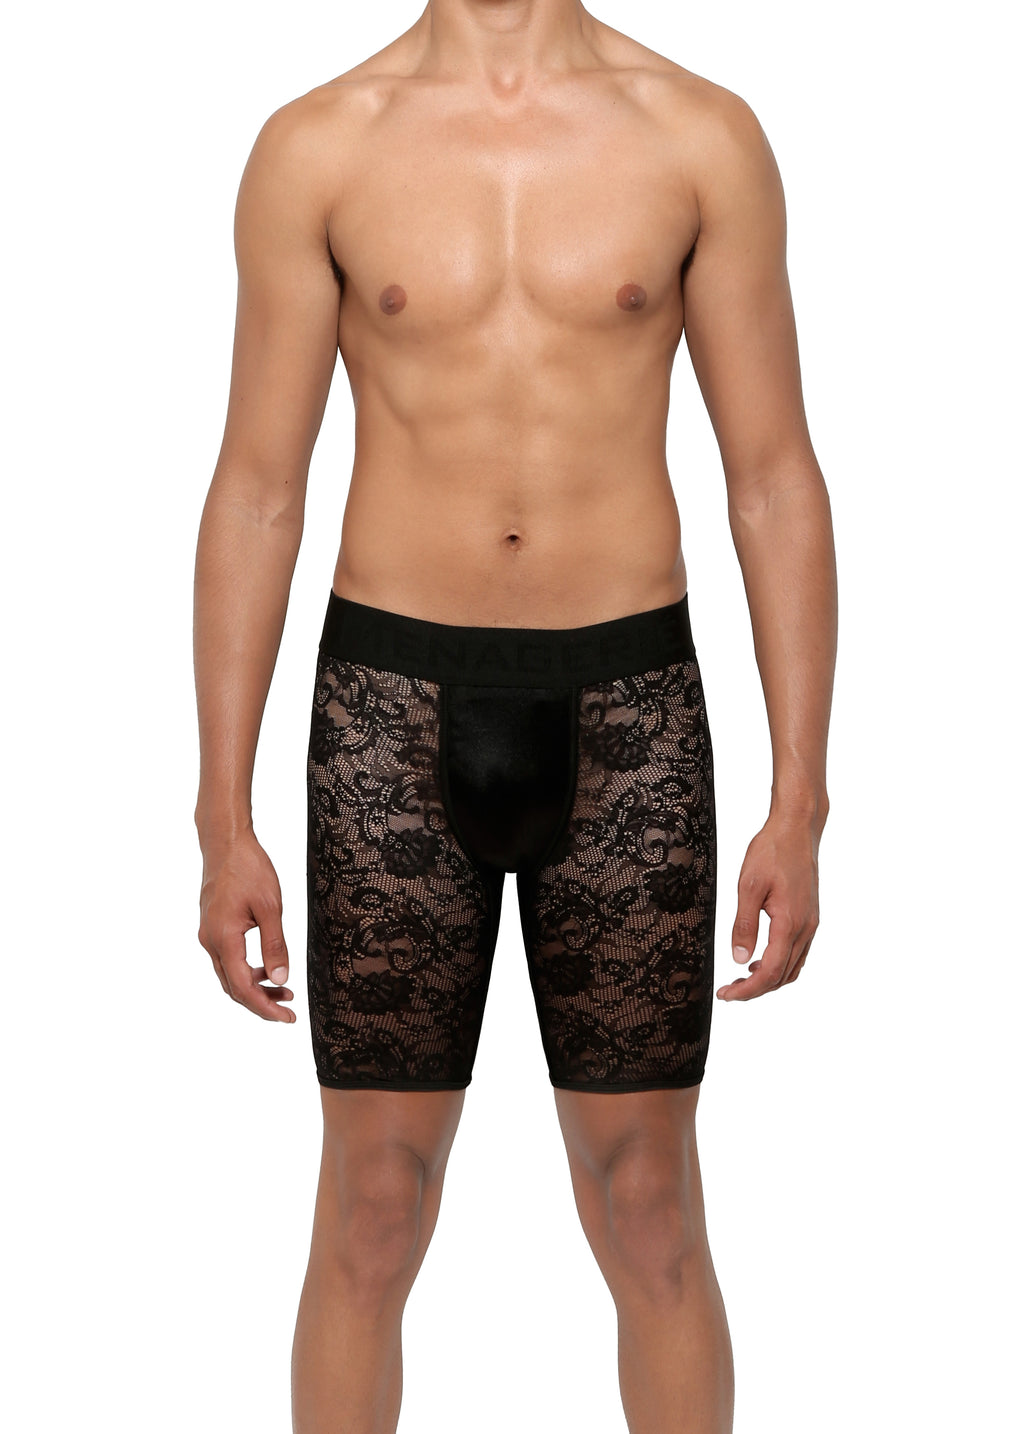 CYCLE SHORT in LACE SPANDEX - MENAGERIÉ Intimates